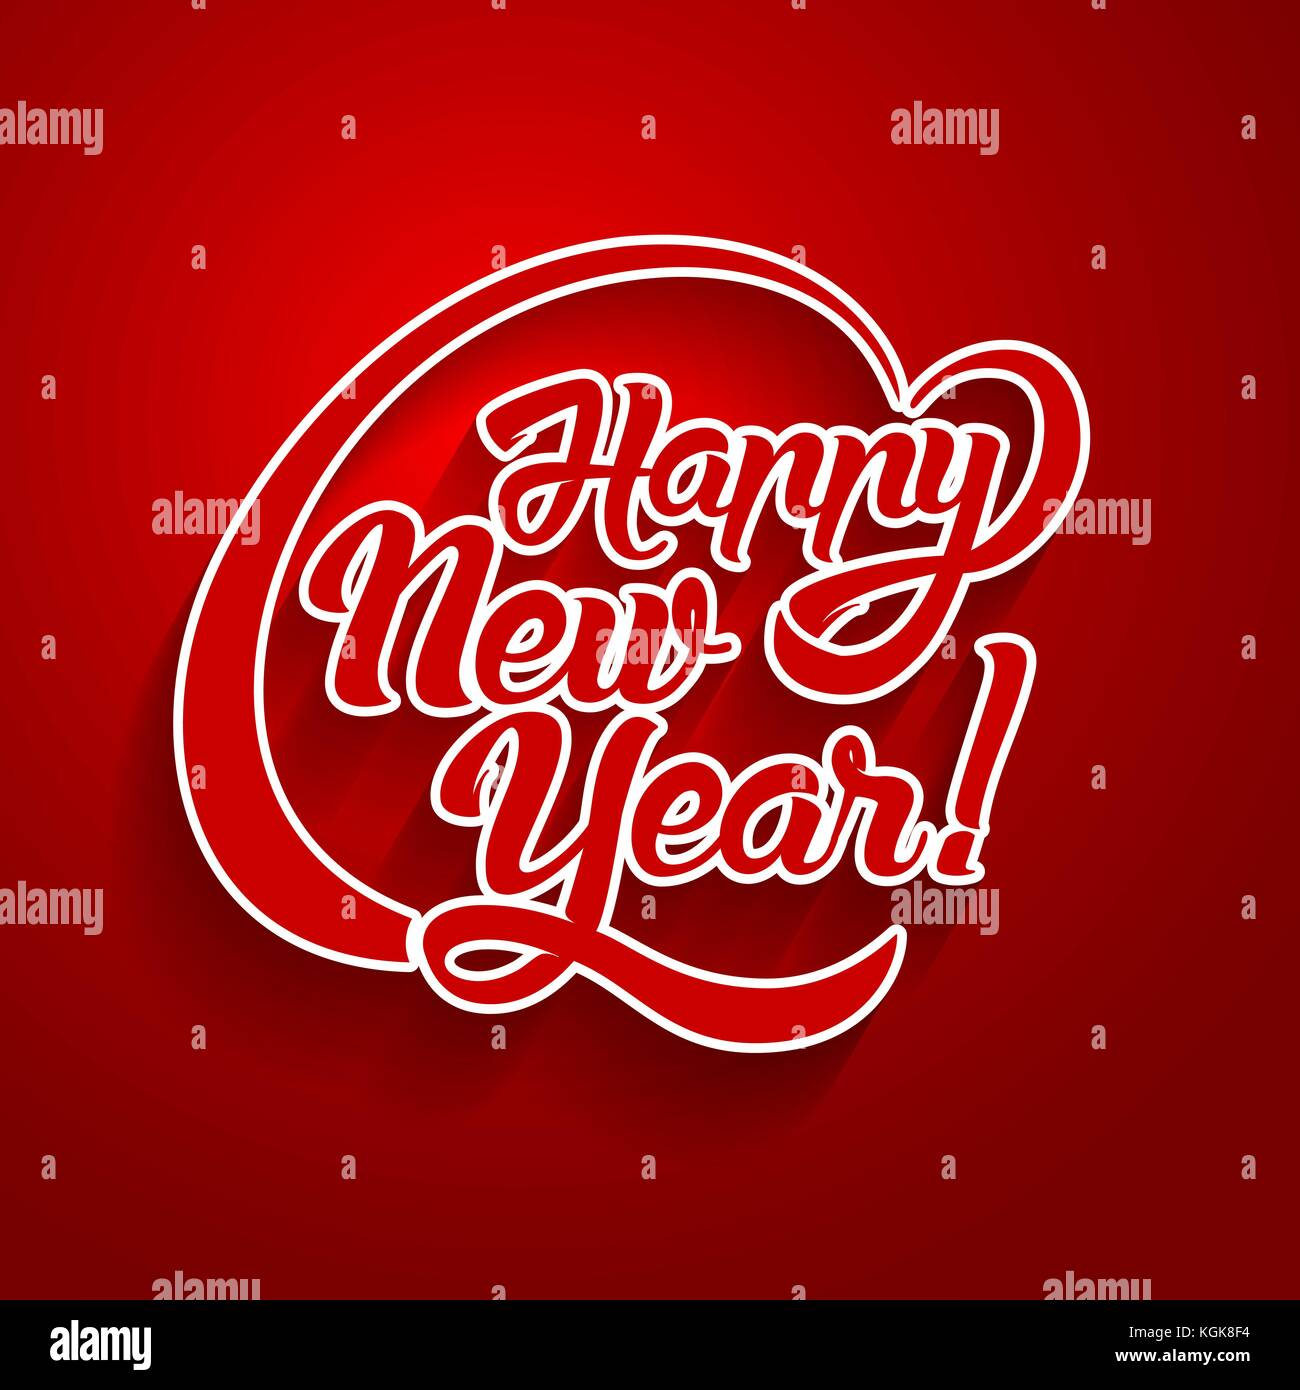 New year greeting card text happy new year lettering vector new year greeting card text happy new year lettering vector illustration kristyandbryce Images